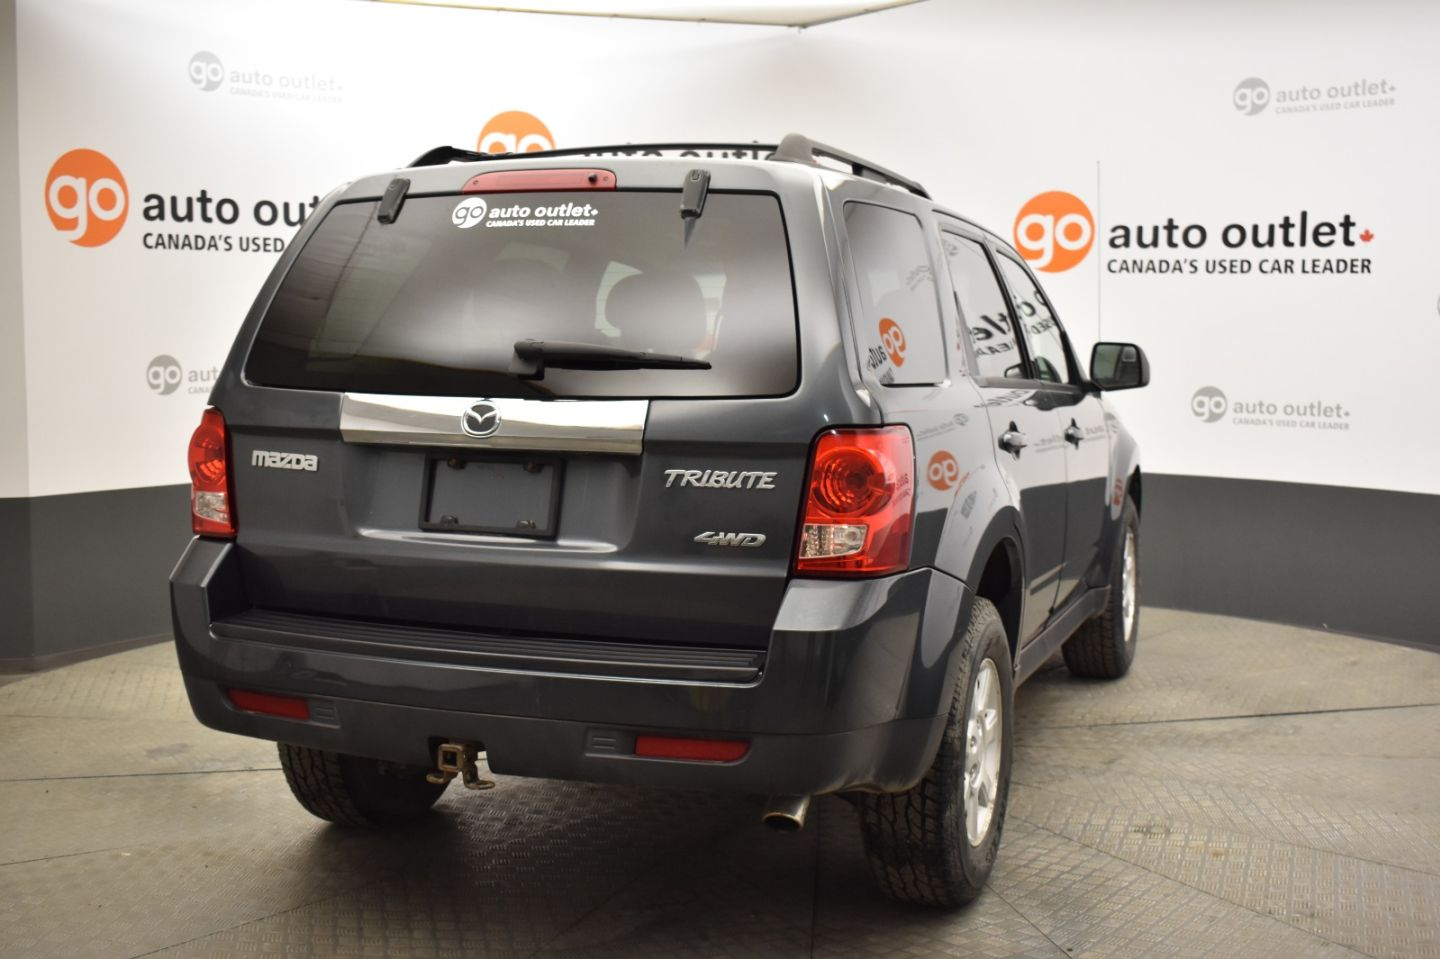 2009 Mazda Tribute GT V6 for sale in Leduc, Alberta